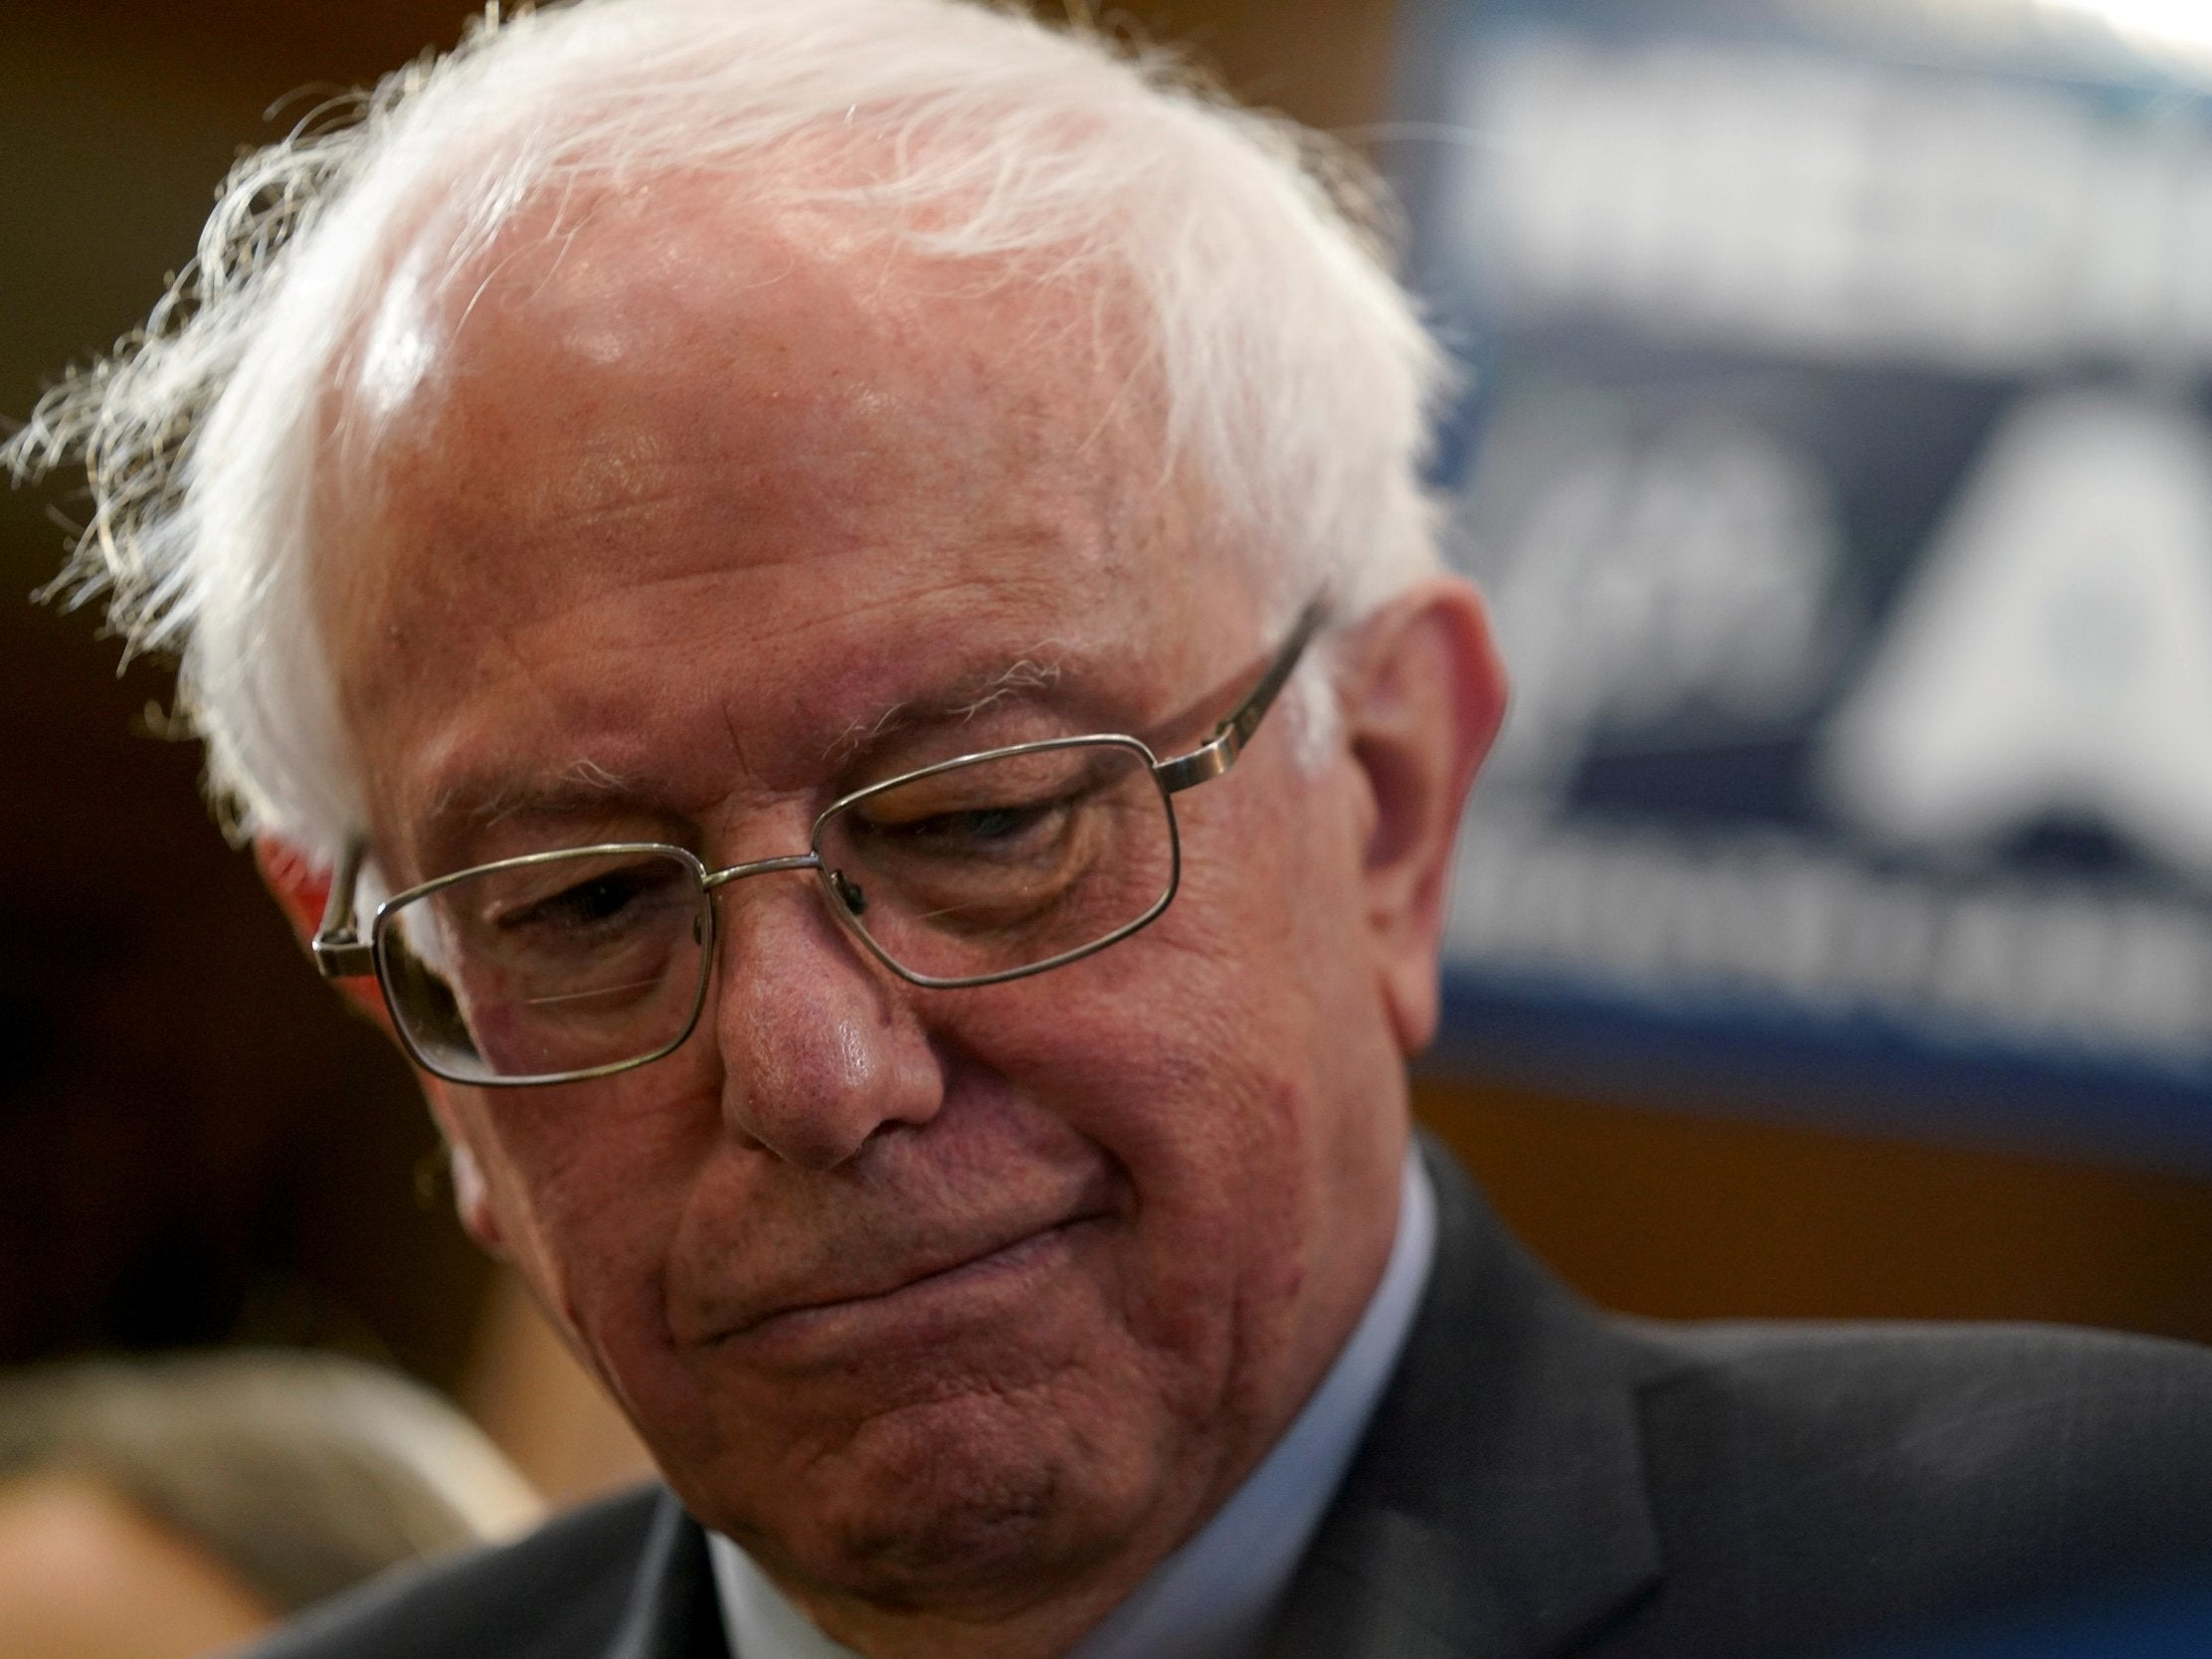 What we now know about Bernie Sanders' foreign policy views should disqualify him from running for president